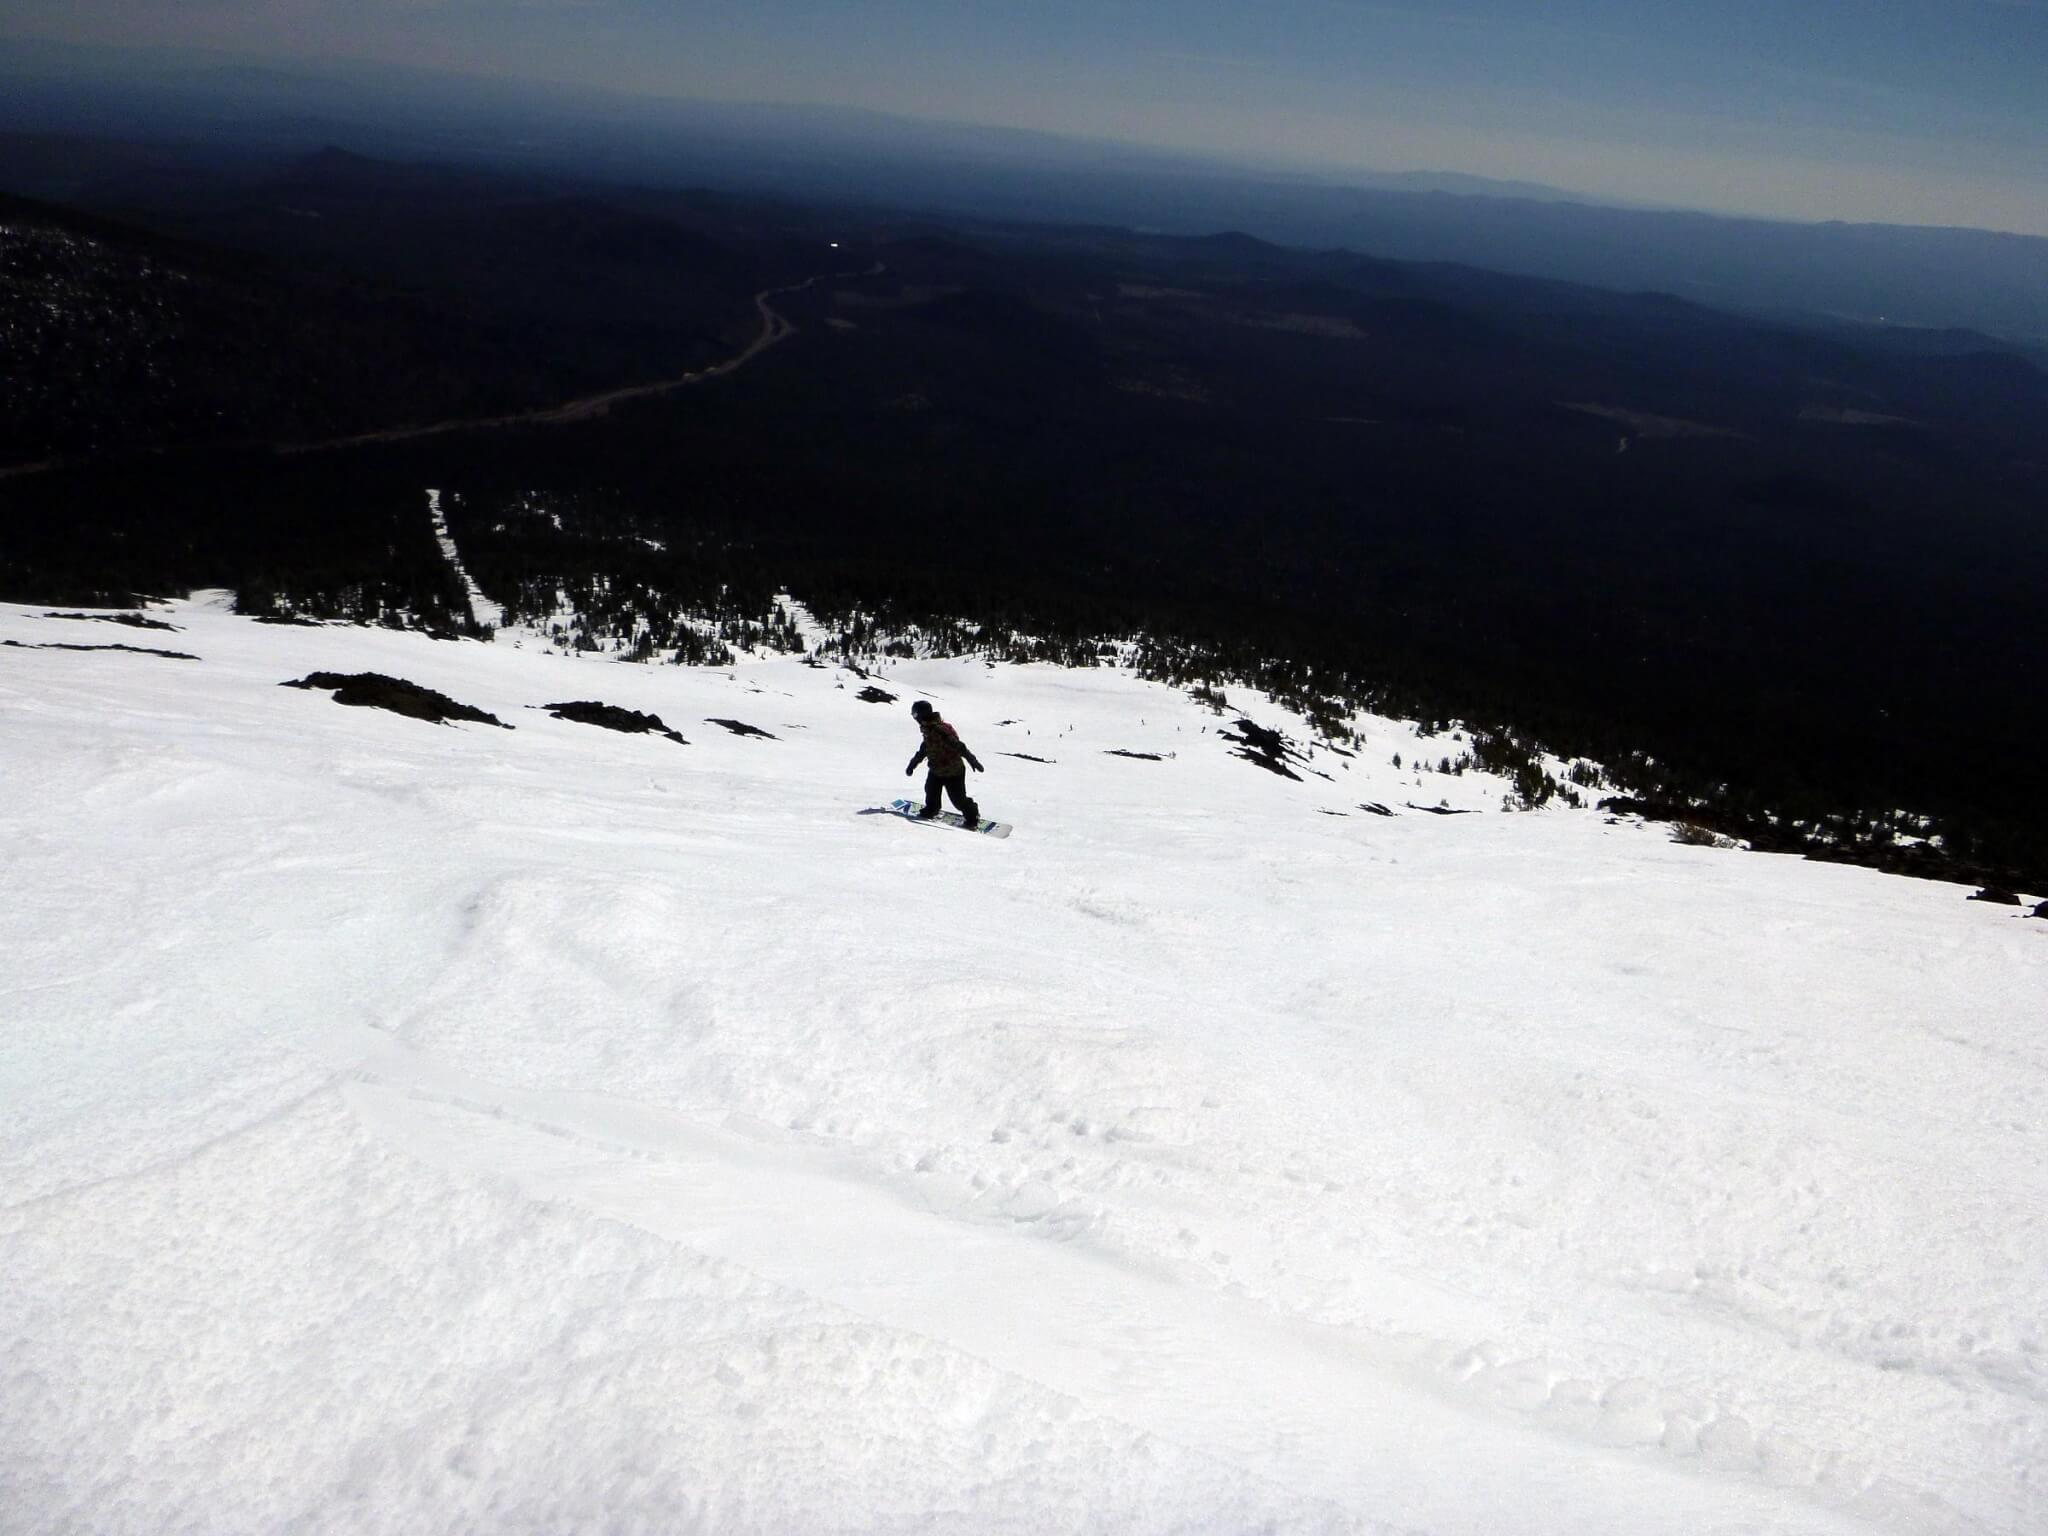 Snowboarding carving corn snow on Cows Face trail at Mt Bachelor